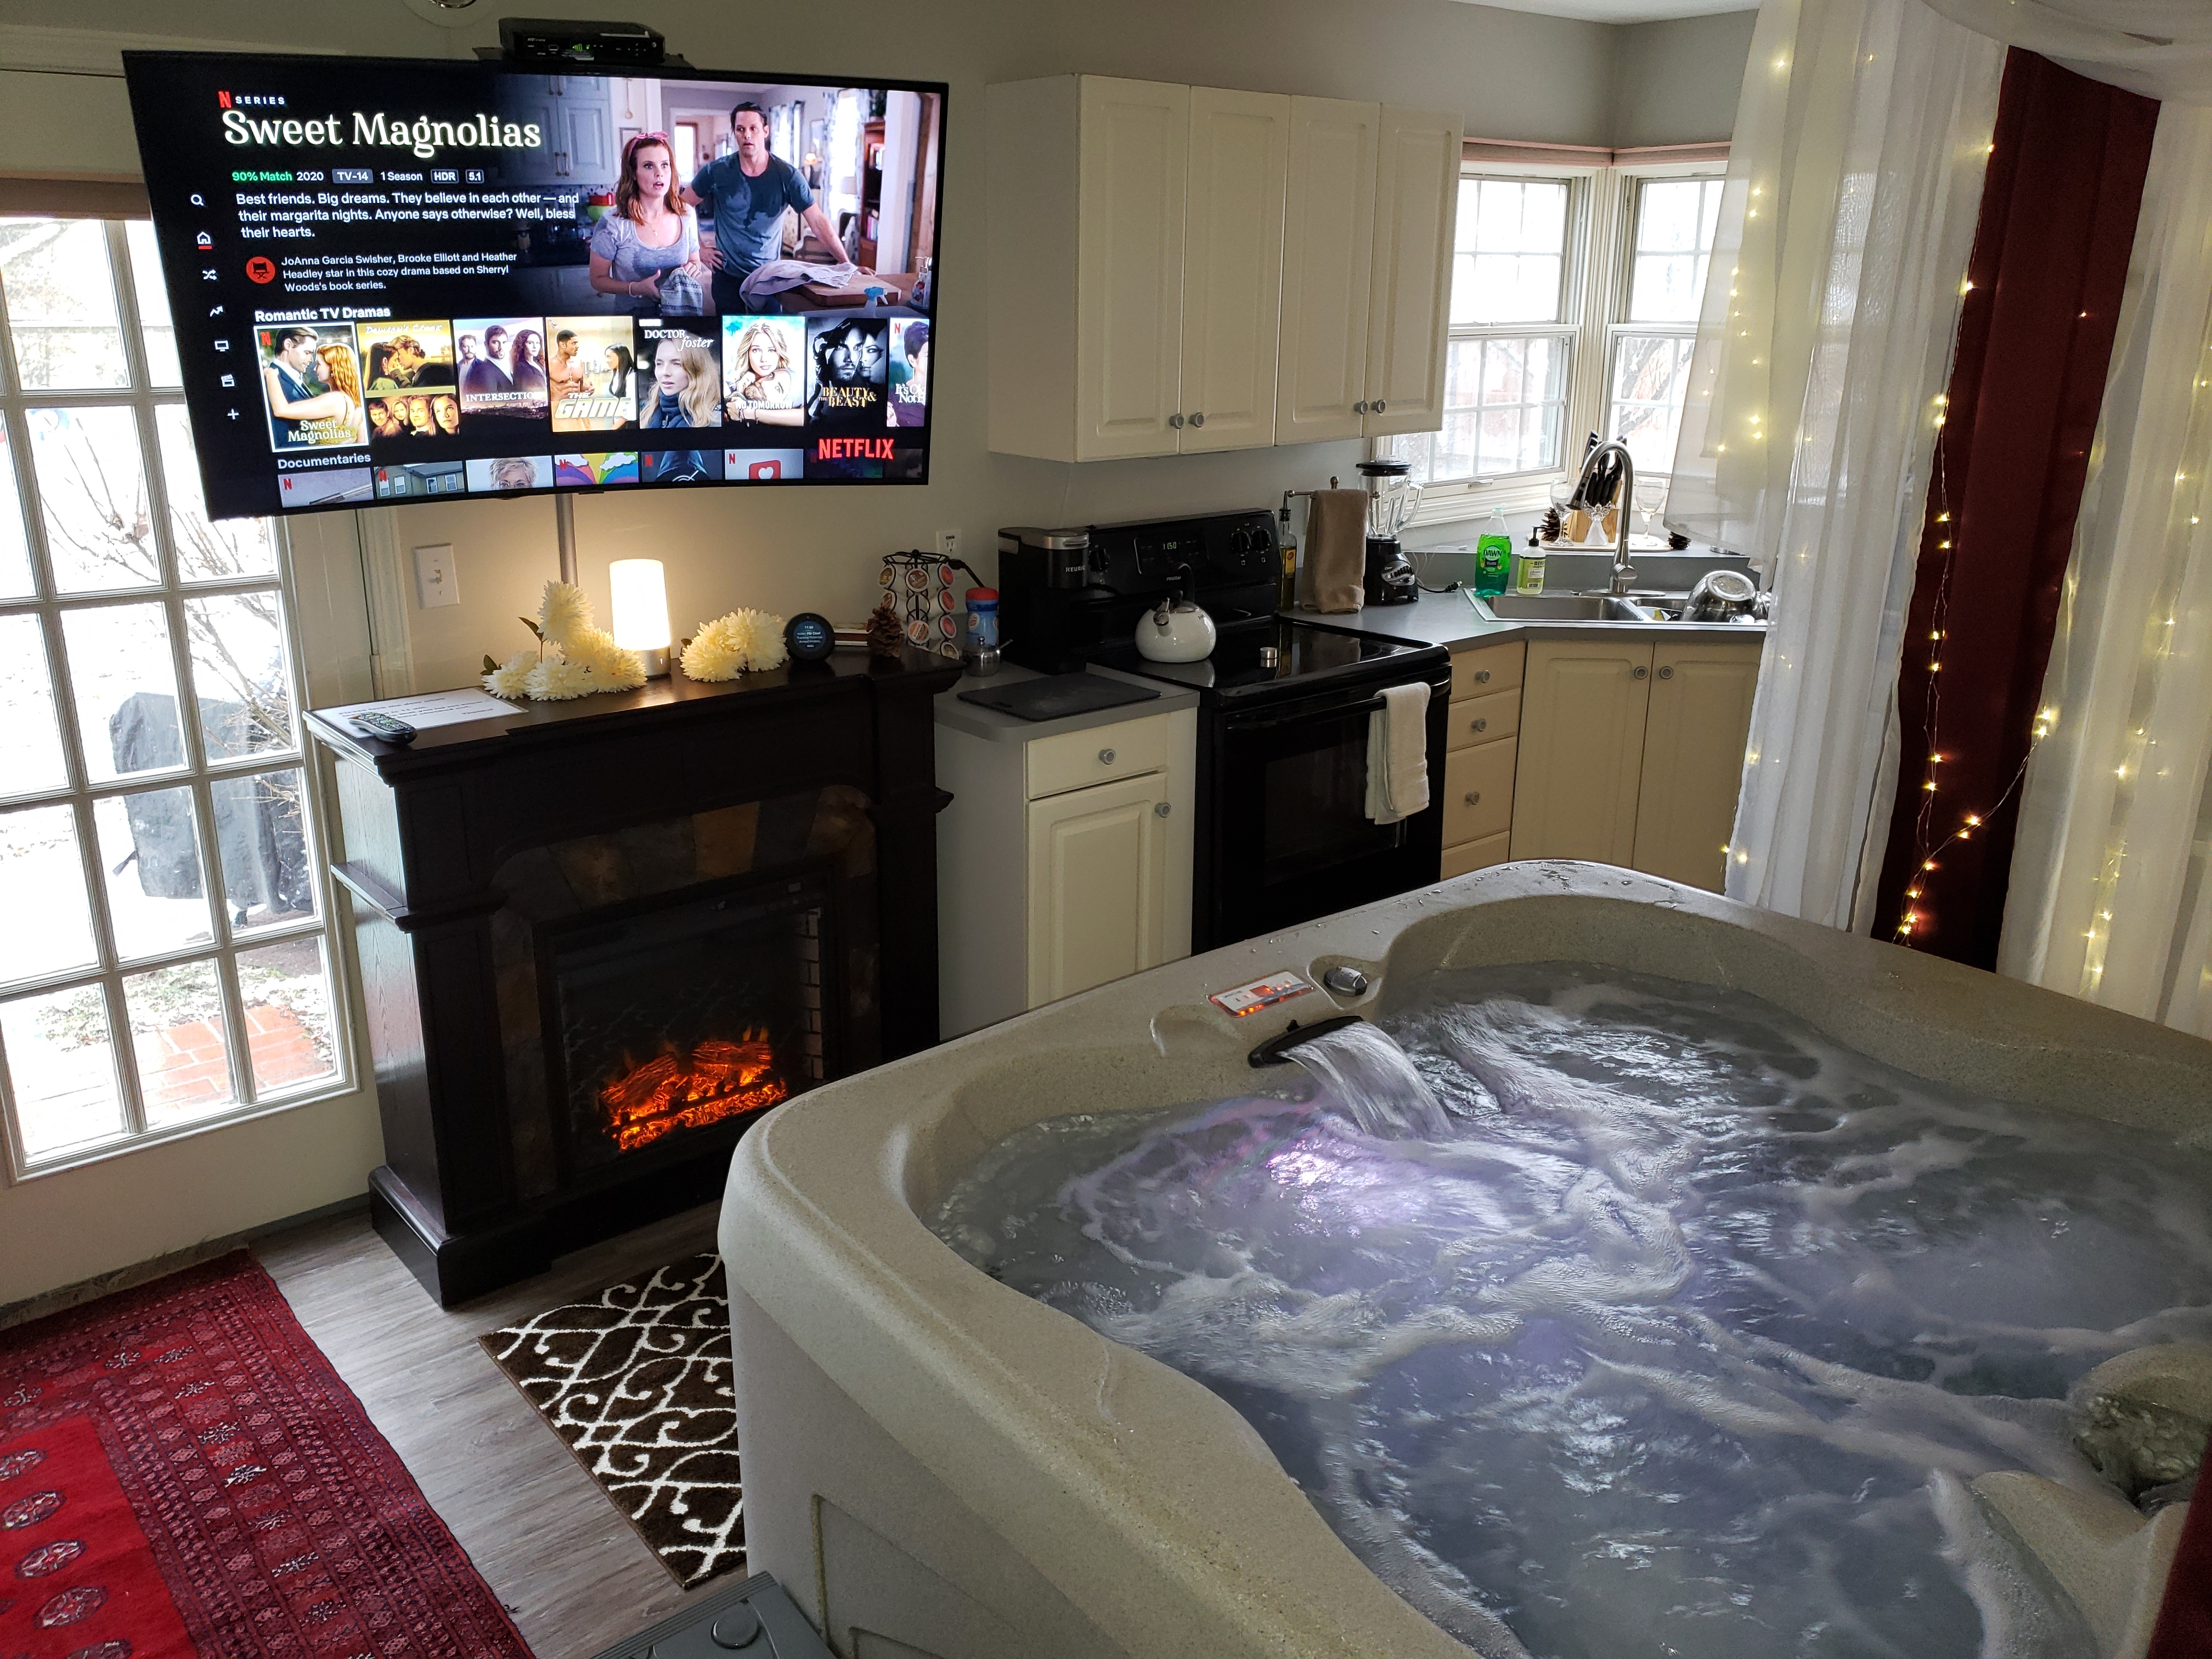 Luxurious Indoor And Outdoor Hot Tubs Suite Apartments For Rent In Indianapolis Indiana United States